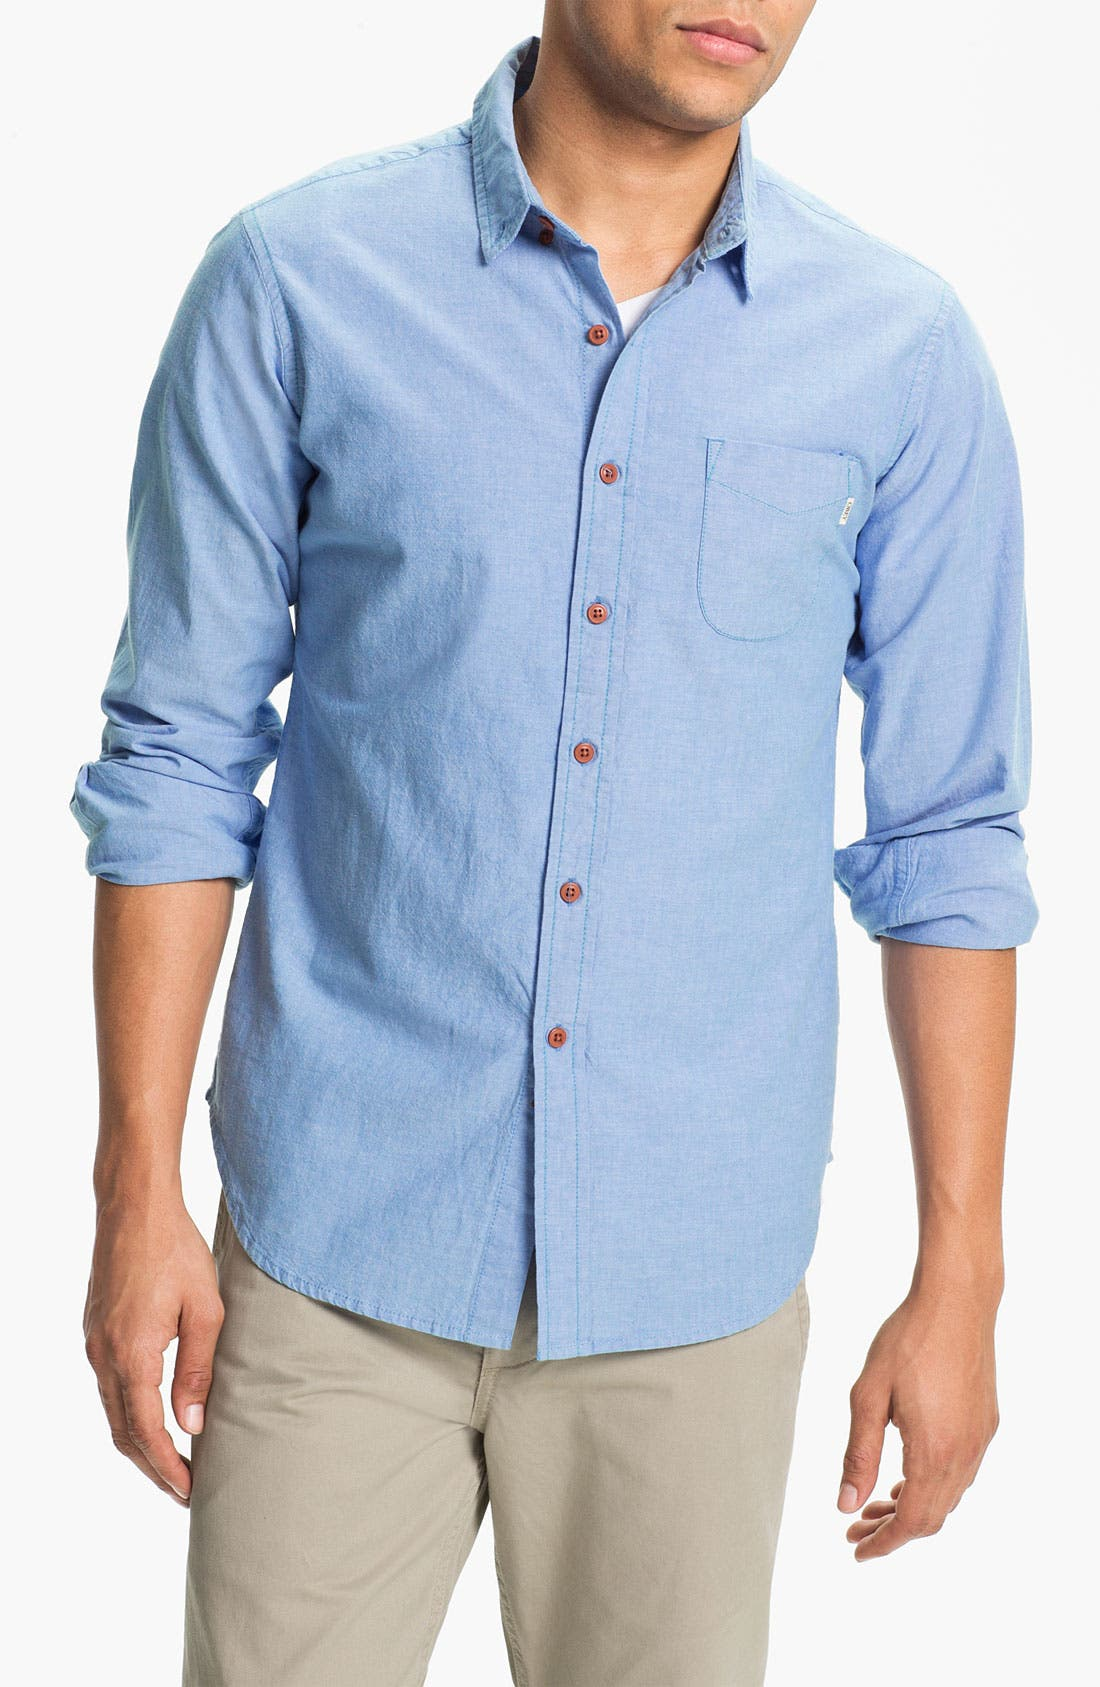 Main Image - Obey 'Elden' Oxford Shirt